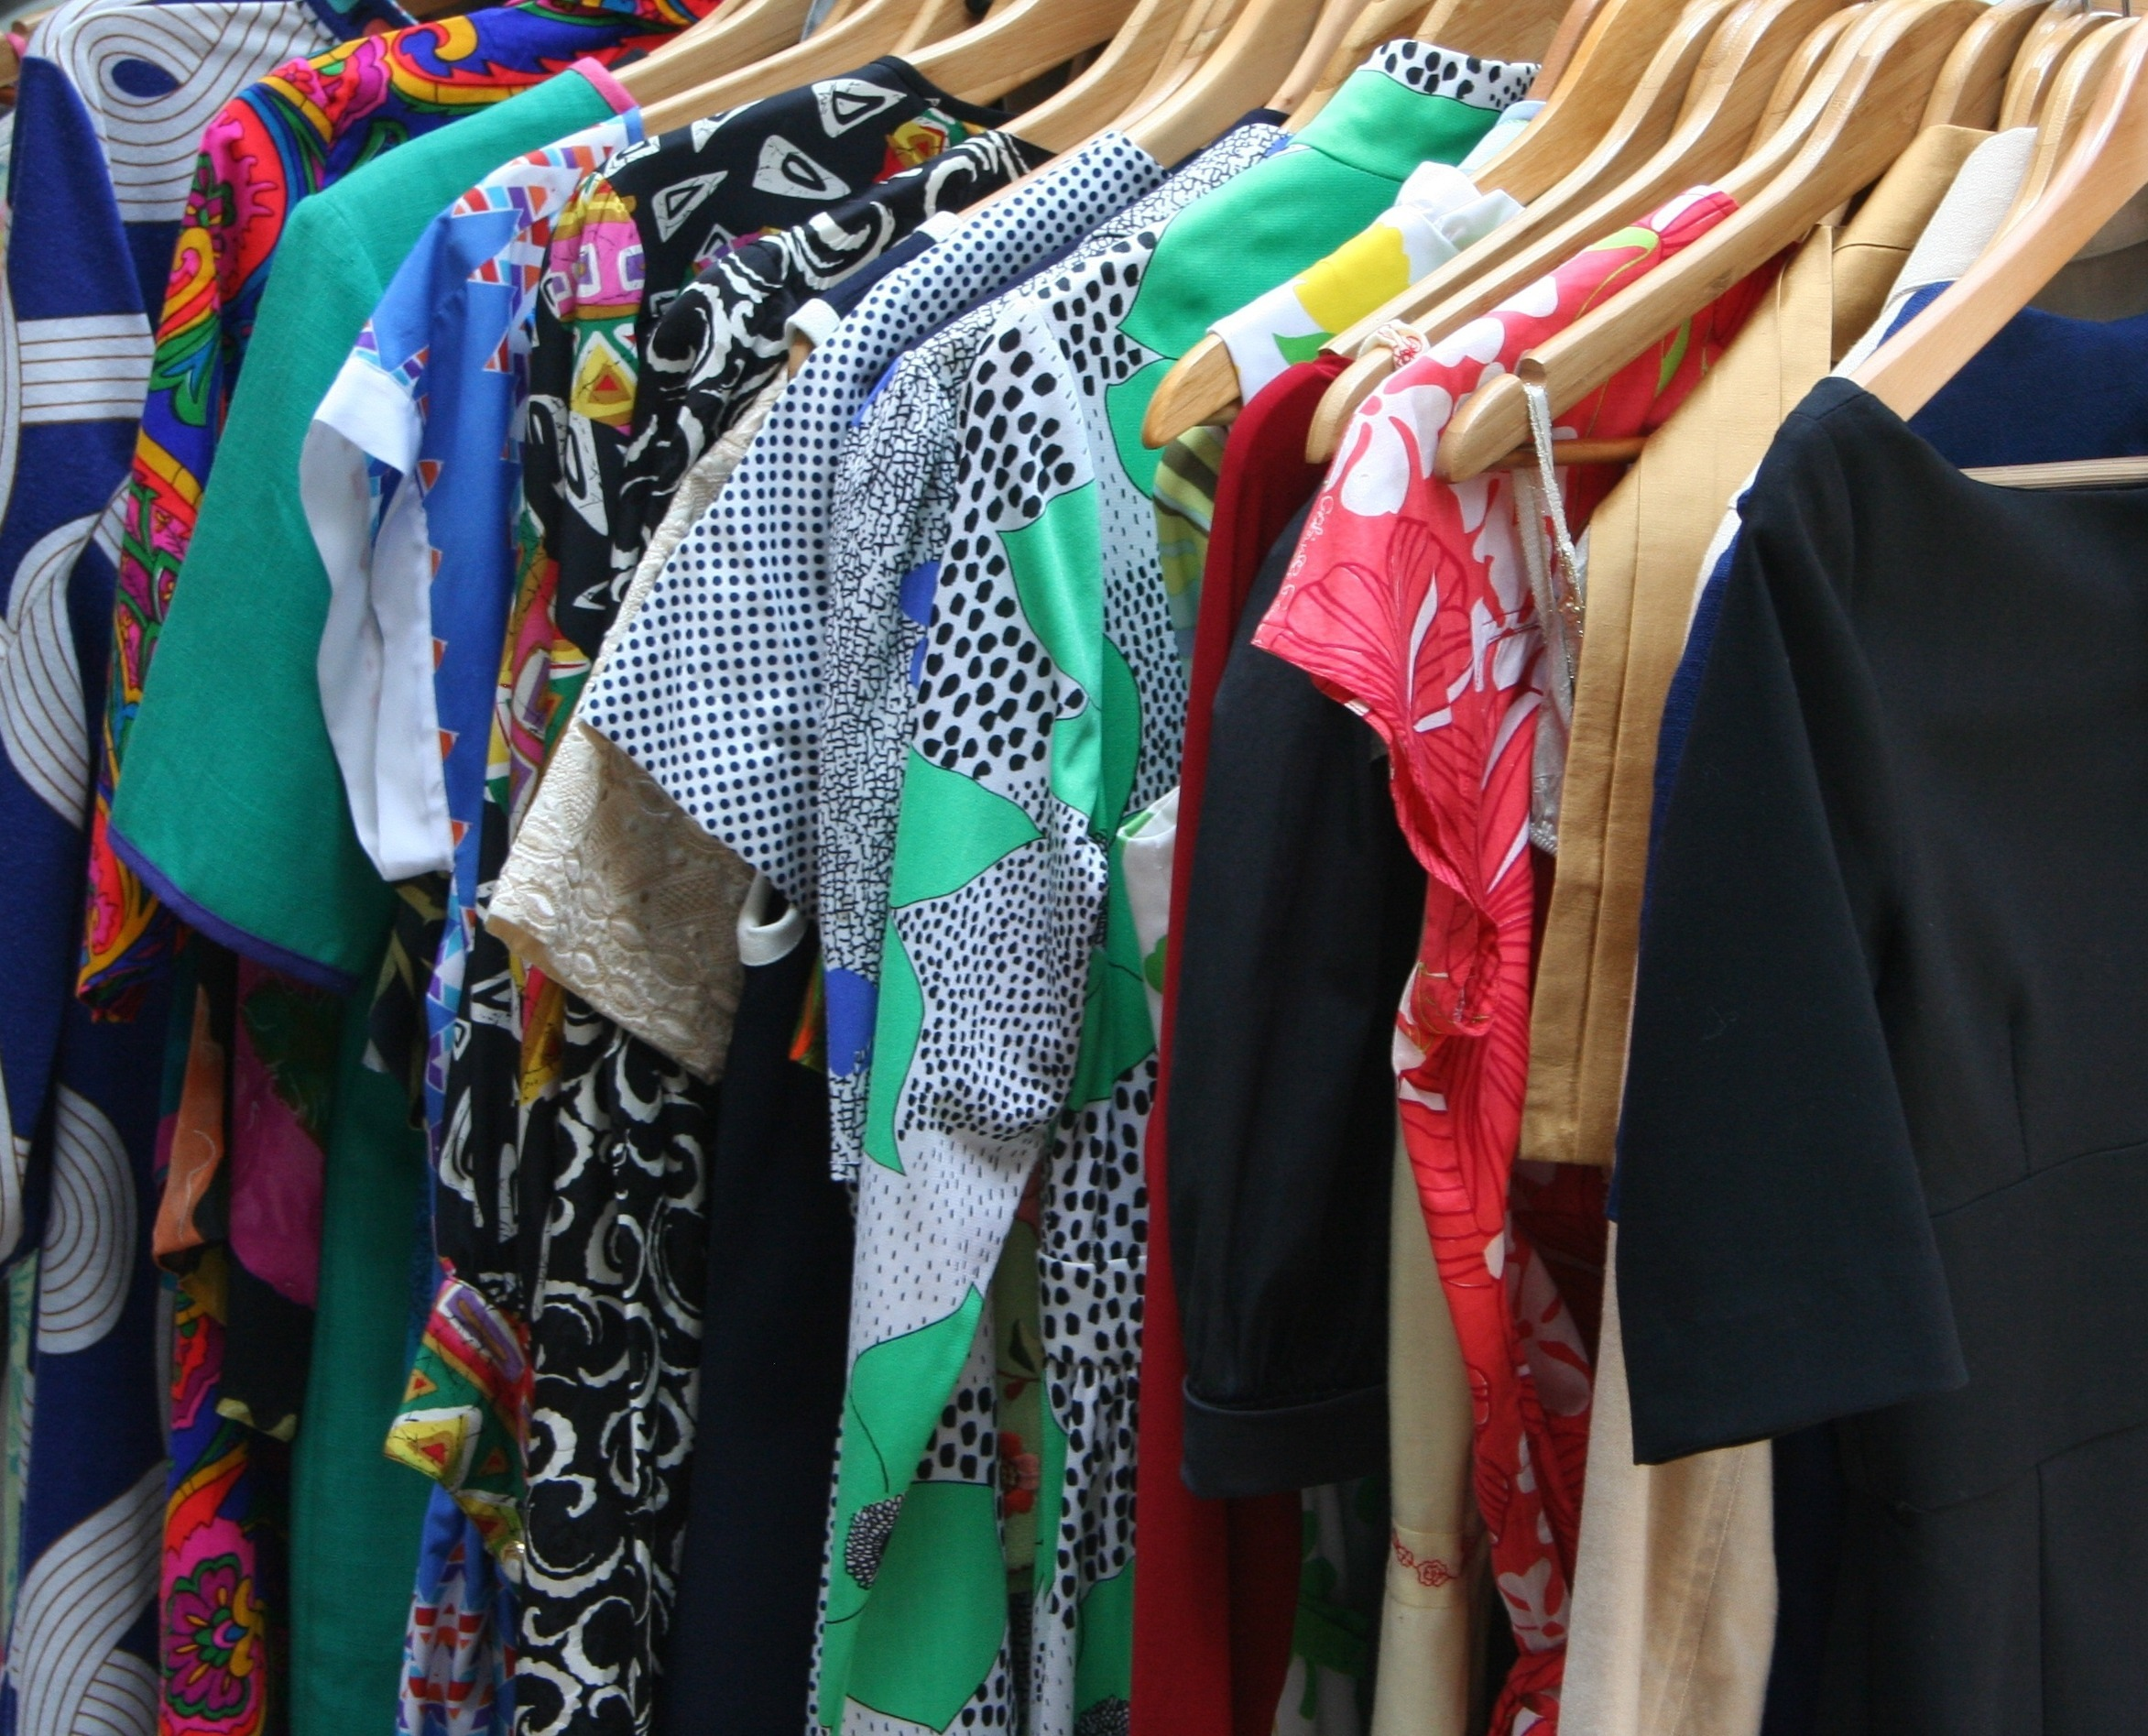 Generic clothes on rack